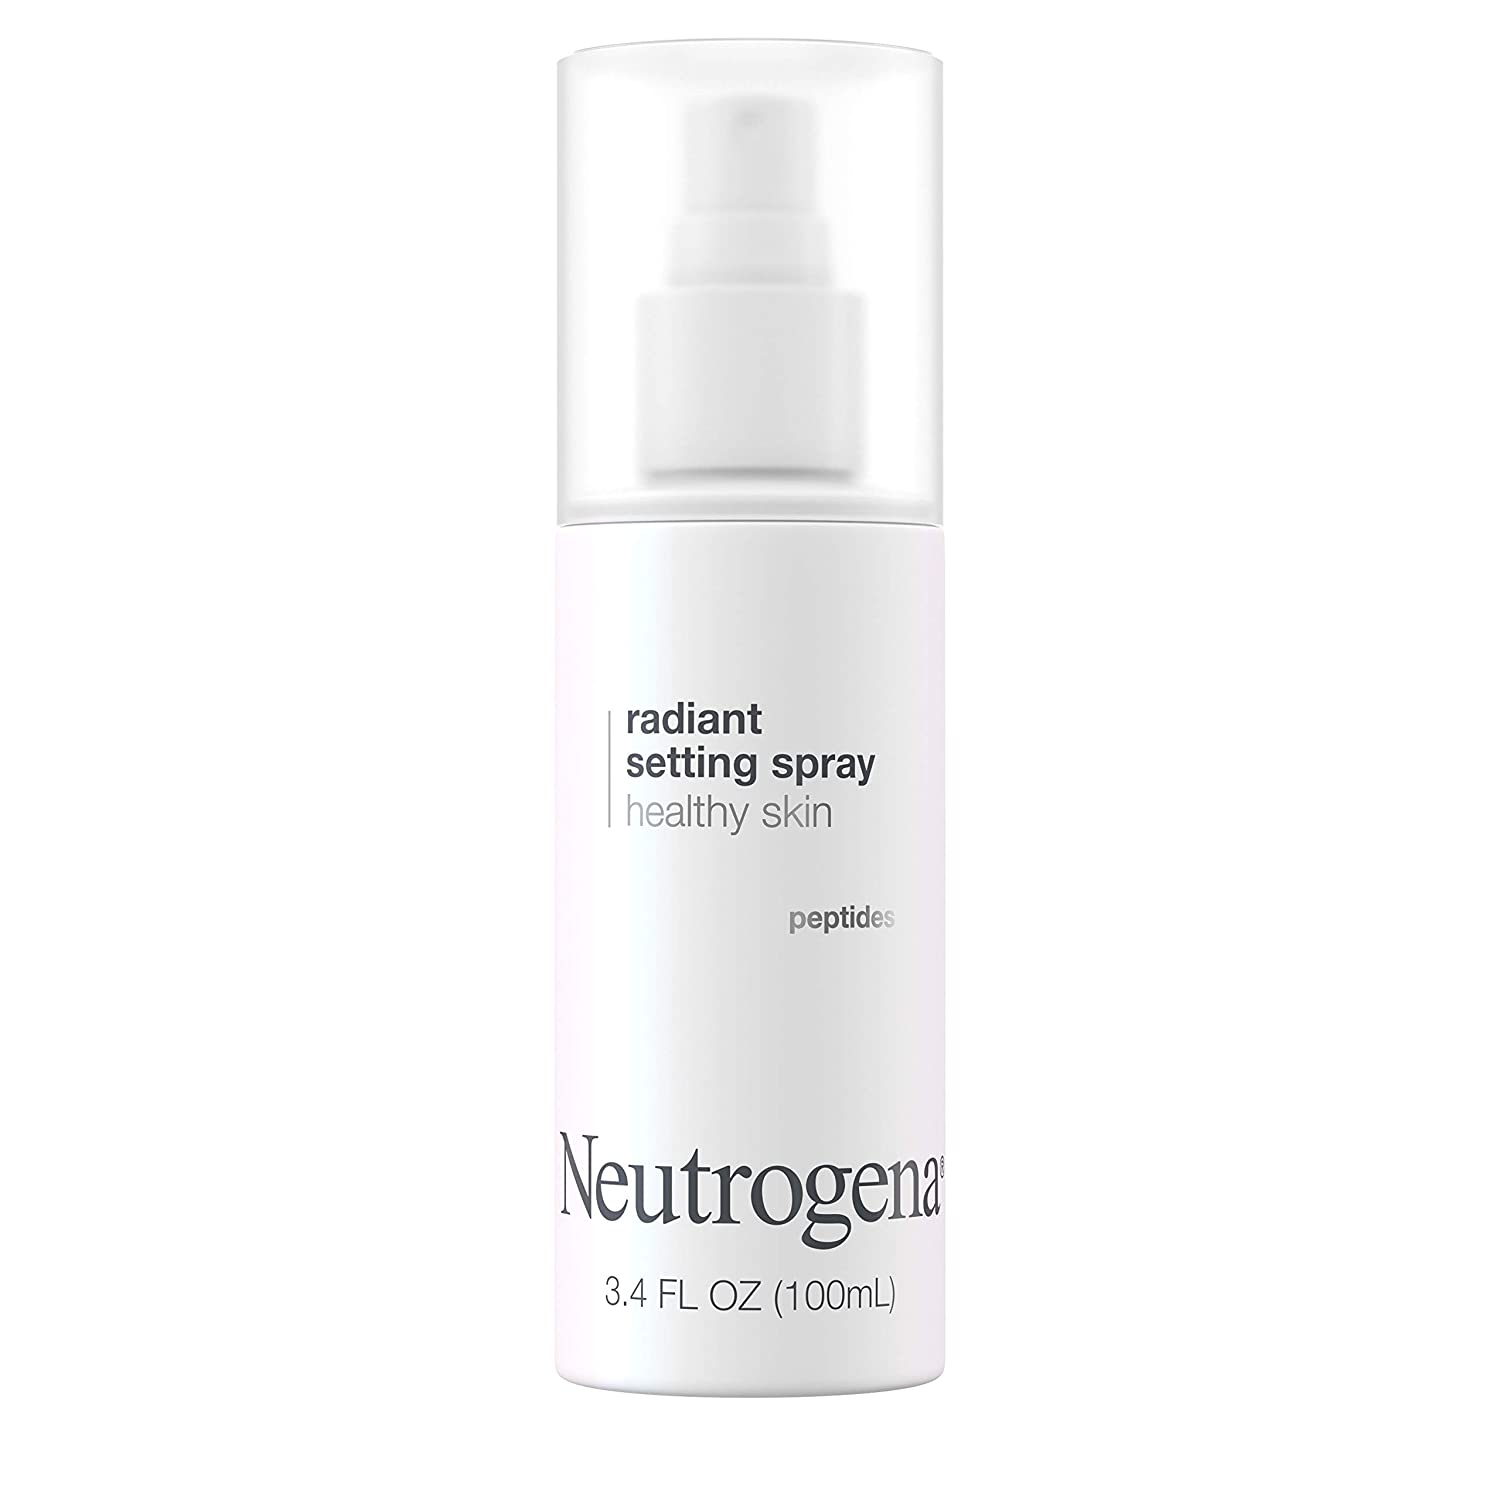 Neutrogena Healthy Skin Radiant Makeup Setting Spray, Long-Lasting, Formulated with Antioxidants & Peptides Weightless Face Setting Mist for Healthy Looking, Glowing Skin, 3.4 fl. oz